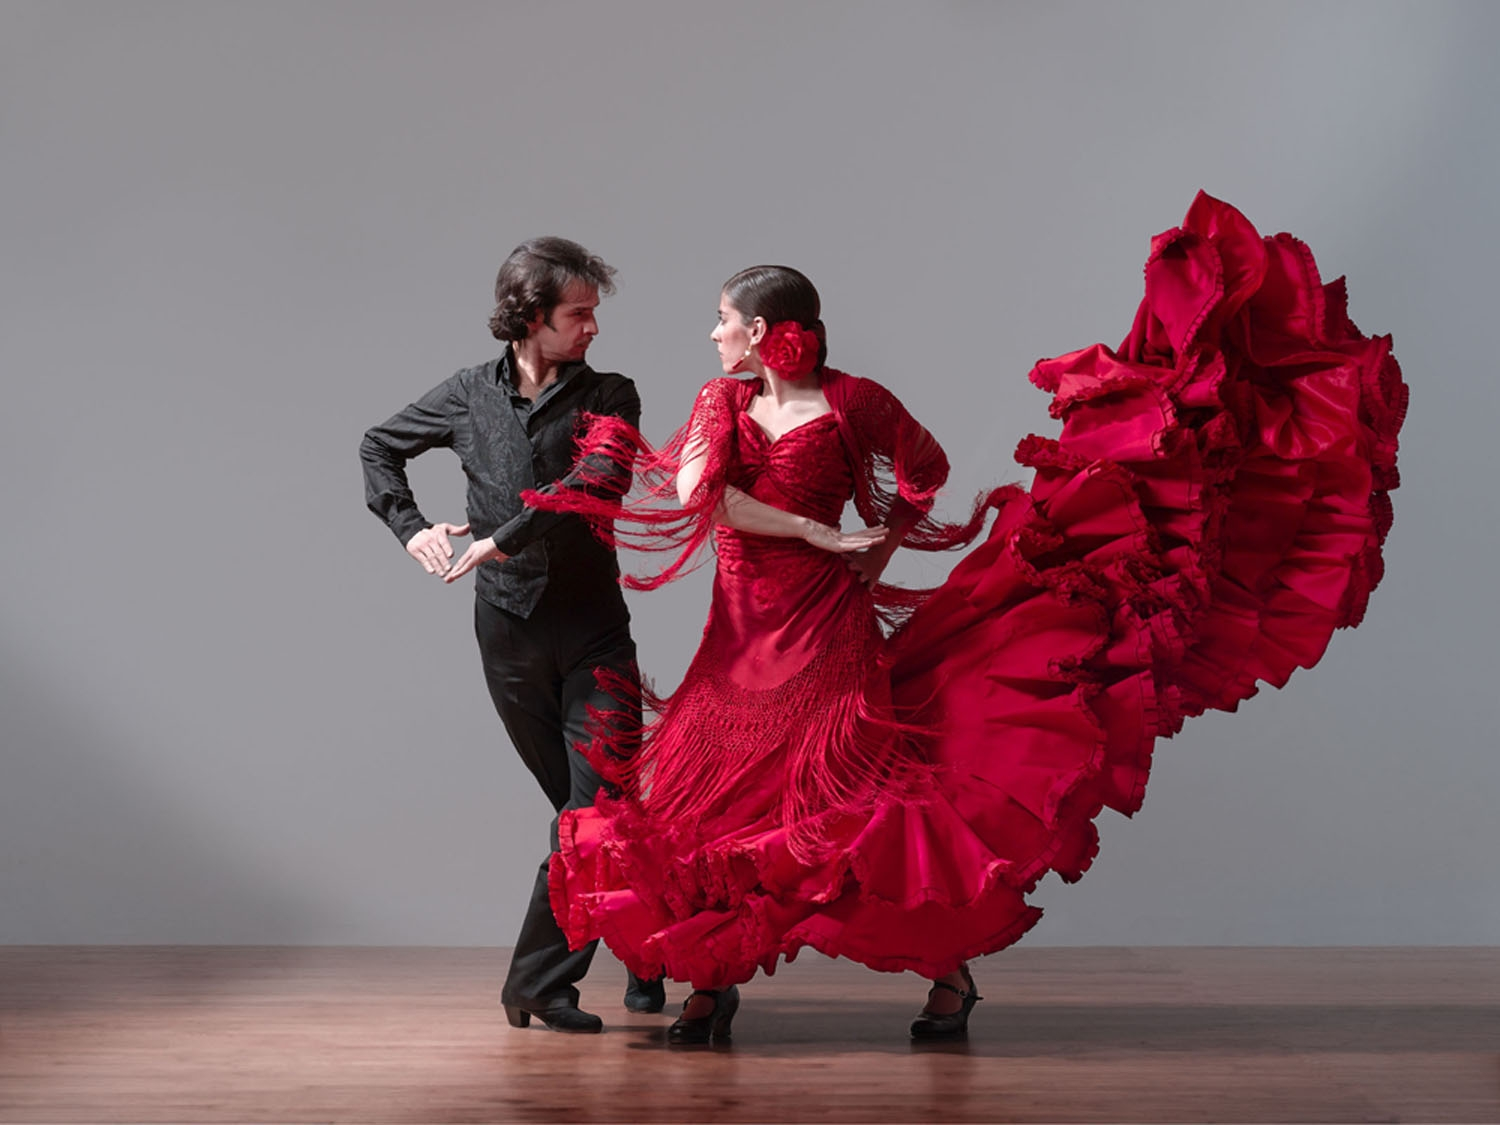 an analysis of influences of gypsies in the development of flamenco (1993) on the legal traditions of the roma, or gypsies a fascinating account of how a primarily alien culture functions in a larger social context.